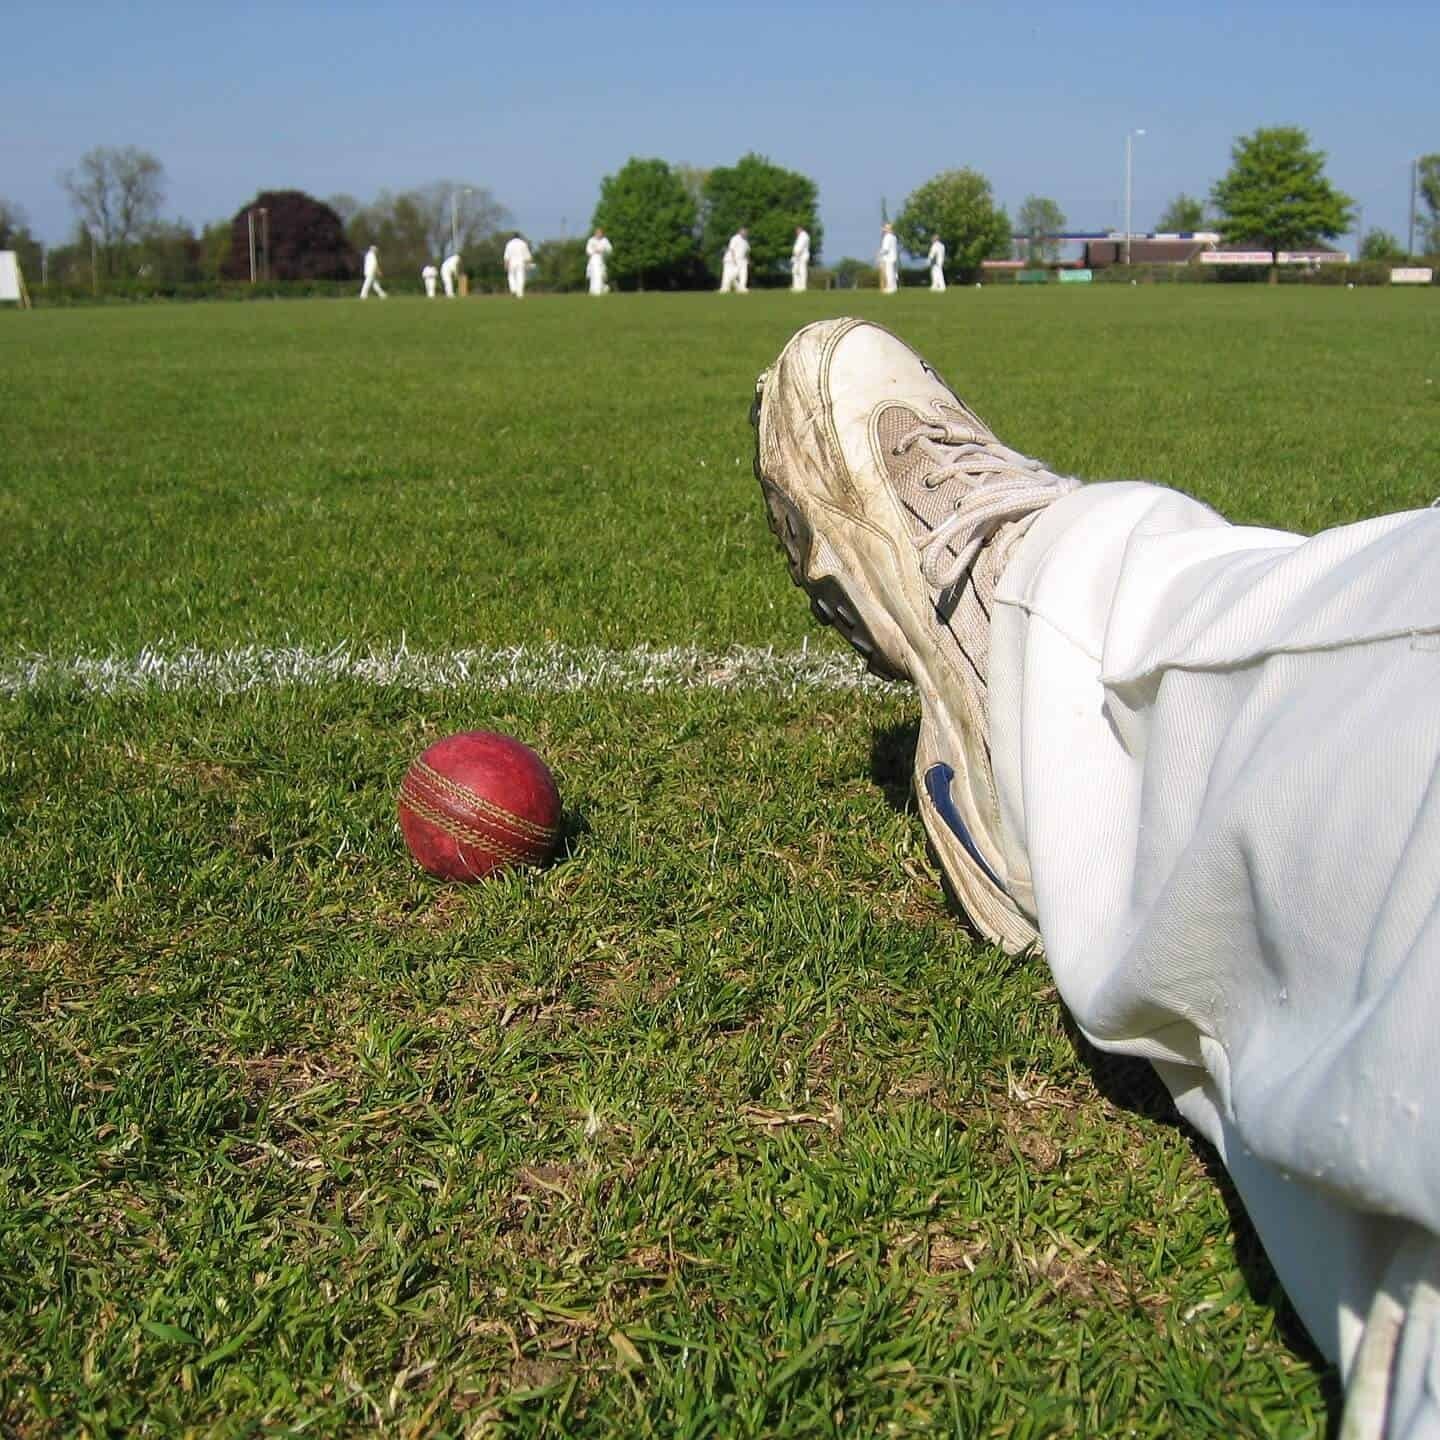 A Cricket Player sitting at one corner with a ball beside him